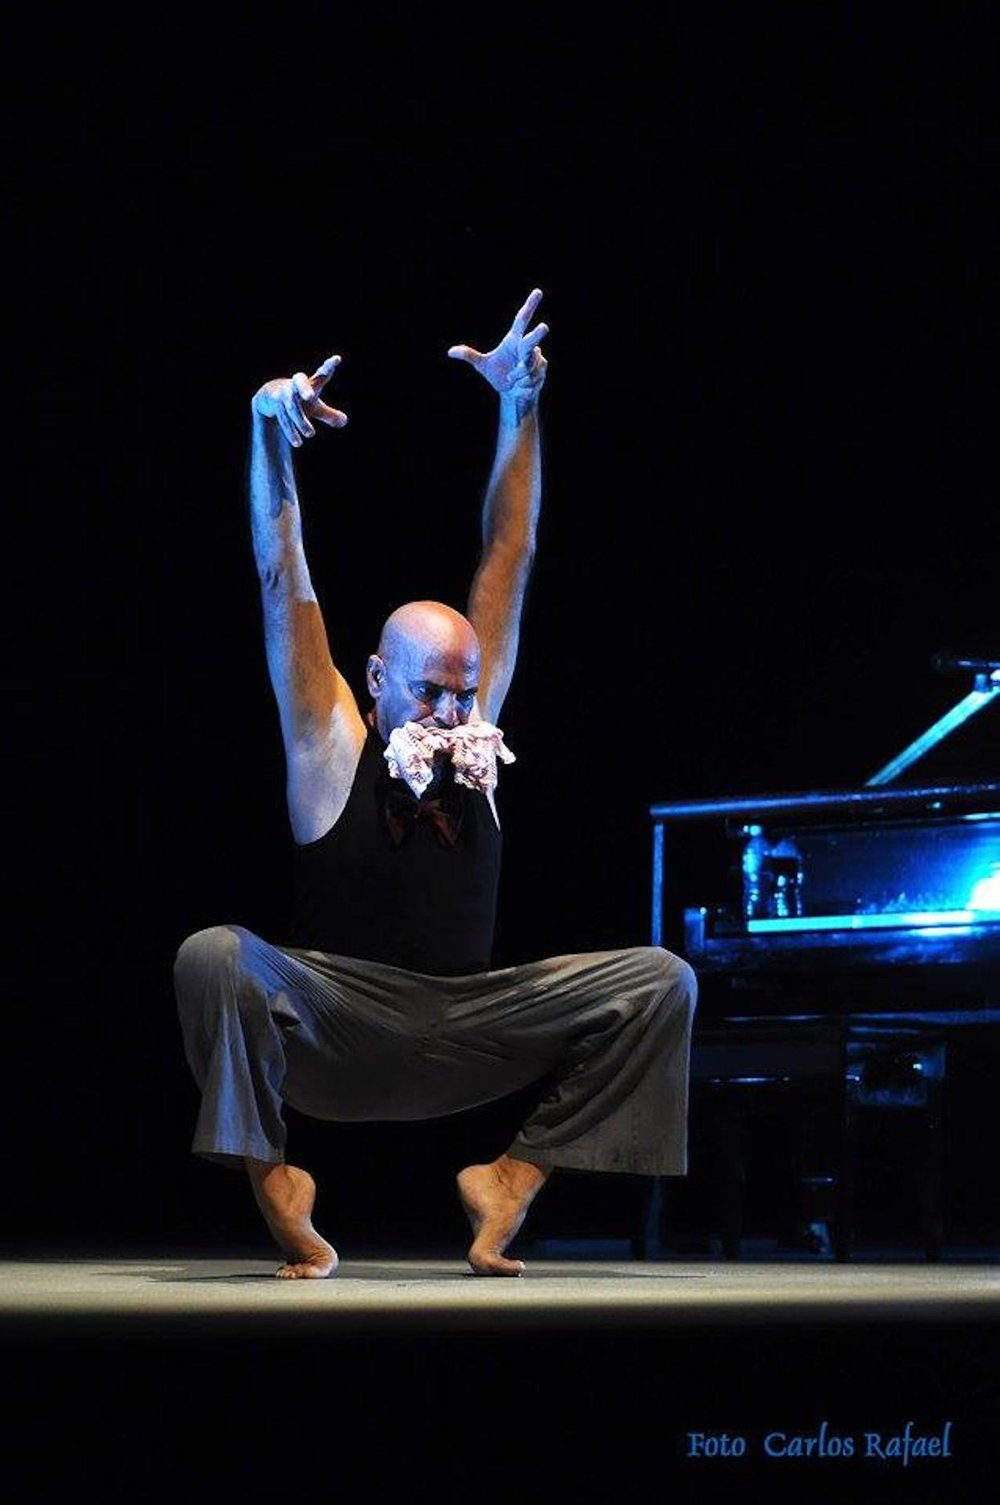 vabas.online     Guillermo Luis Horta - Artist   Meister der Improvisation. Tänzer, Maler, Vocalist, Choreograph, he works with a deep interest in body and voice. He developed Vabas, a training method to synchronize breath and voice with body and movement.